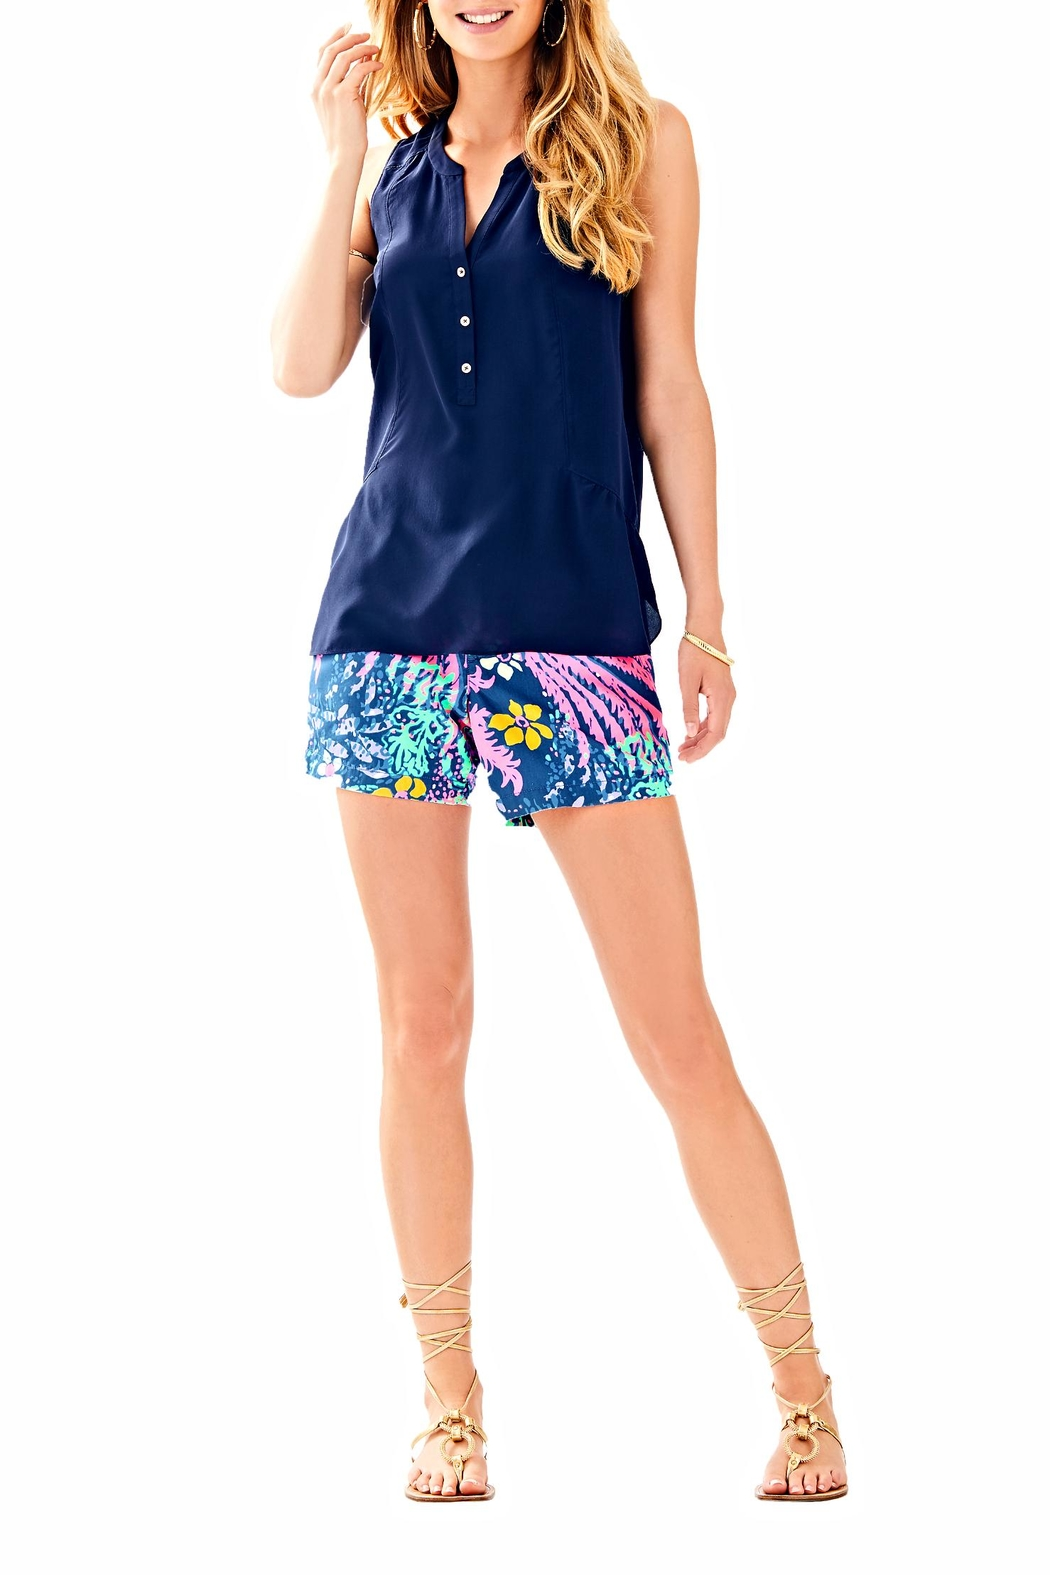 Lilly Pulitzer Kery Silk Top - Main Image